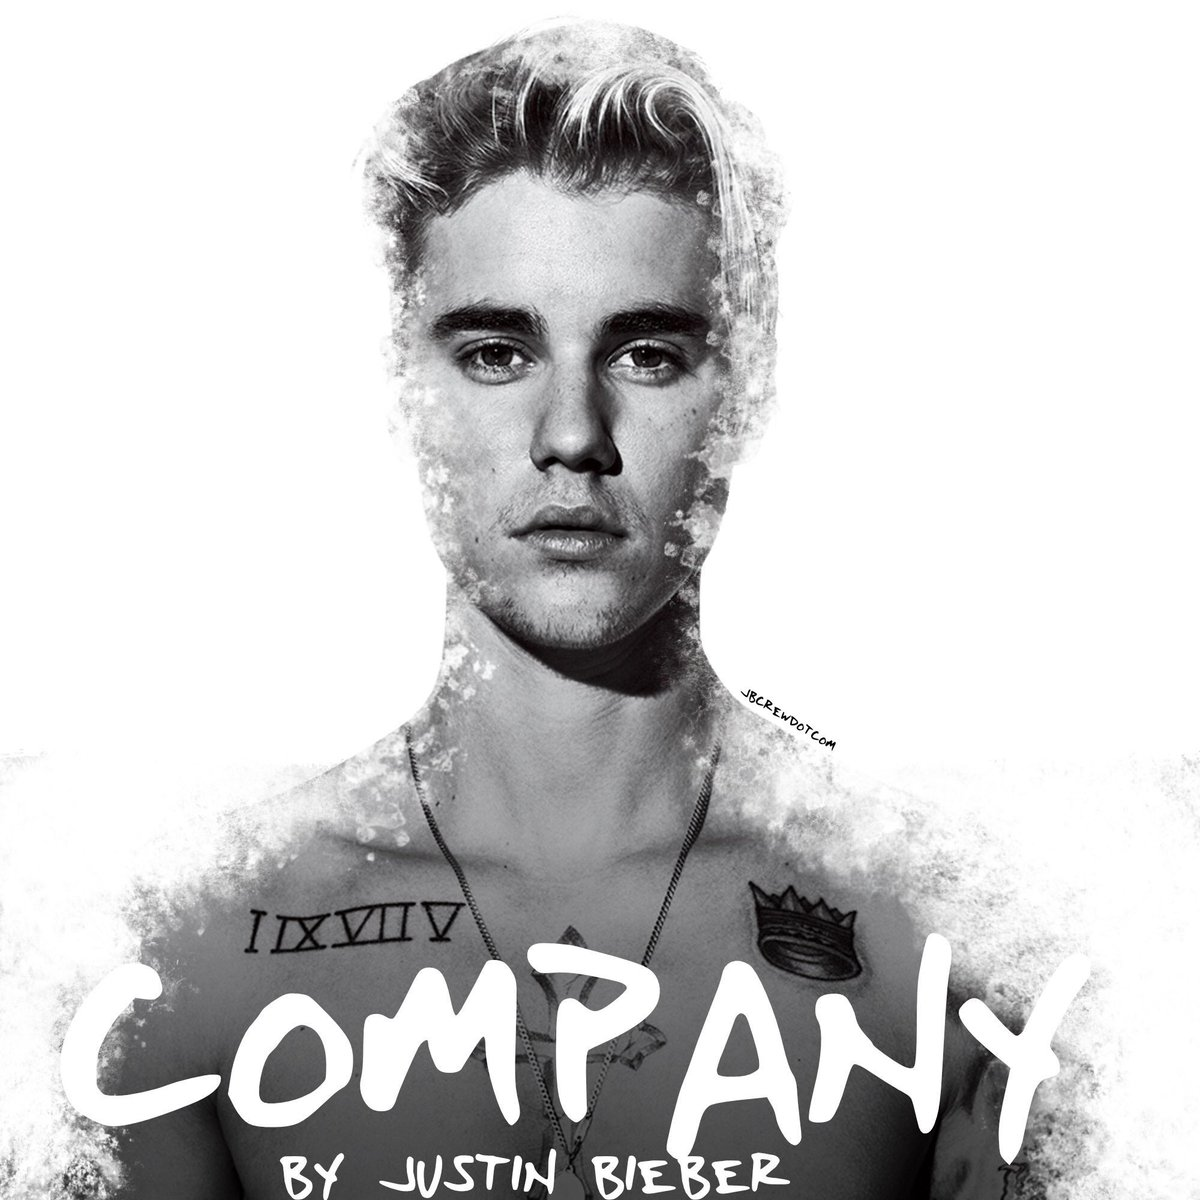 "#JacaTop20  @justinbieber ""Company"" is crawling up the chart to No.11 after charting for 3 weeks https://t.co/ZGfoQ8aq5z"